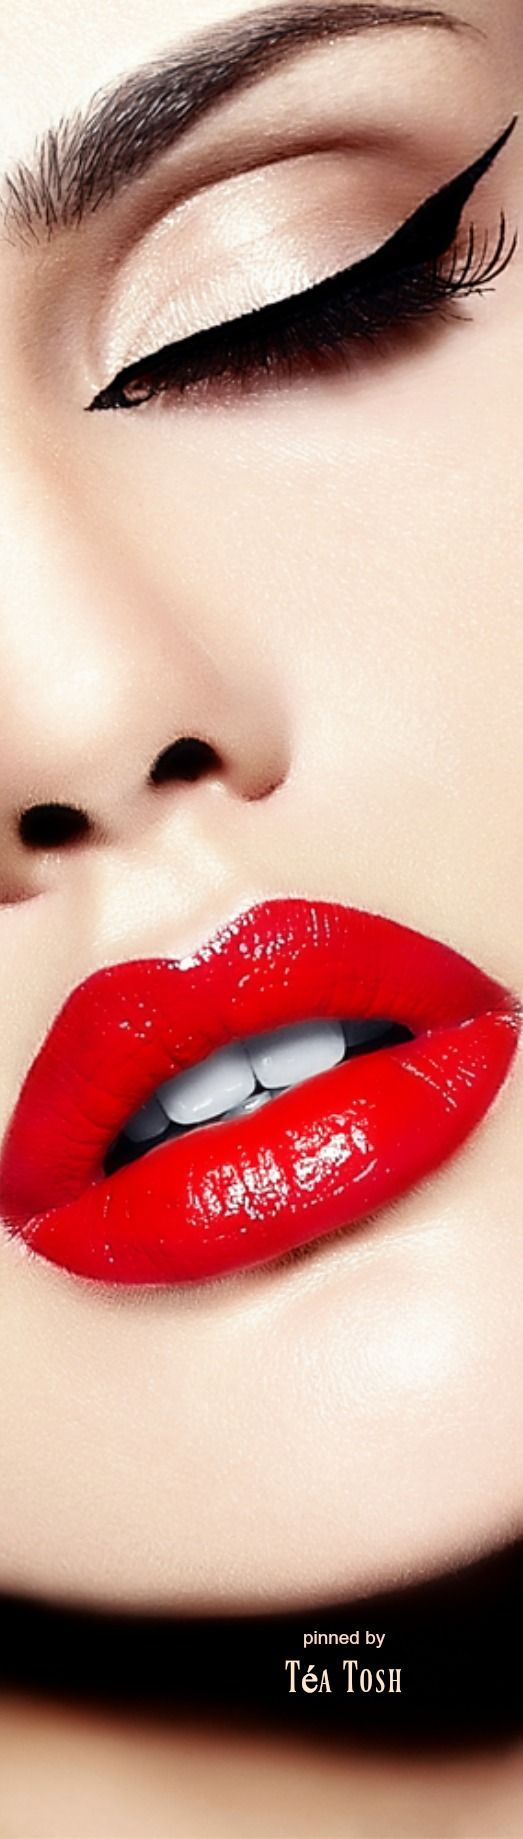 ❇︎Téa Tosh❇︎Perfect Red Lips ;)                              …